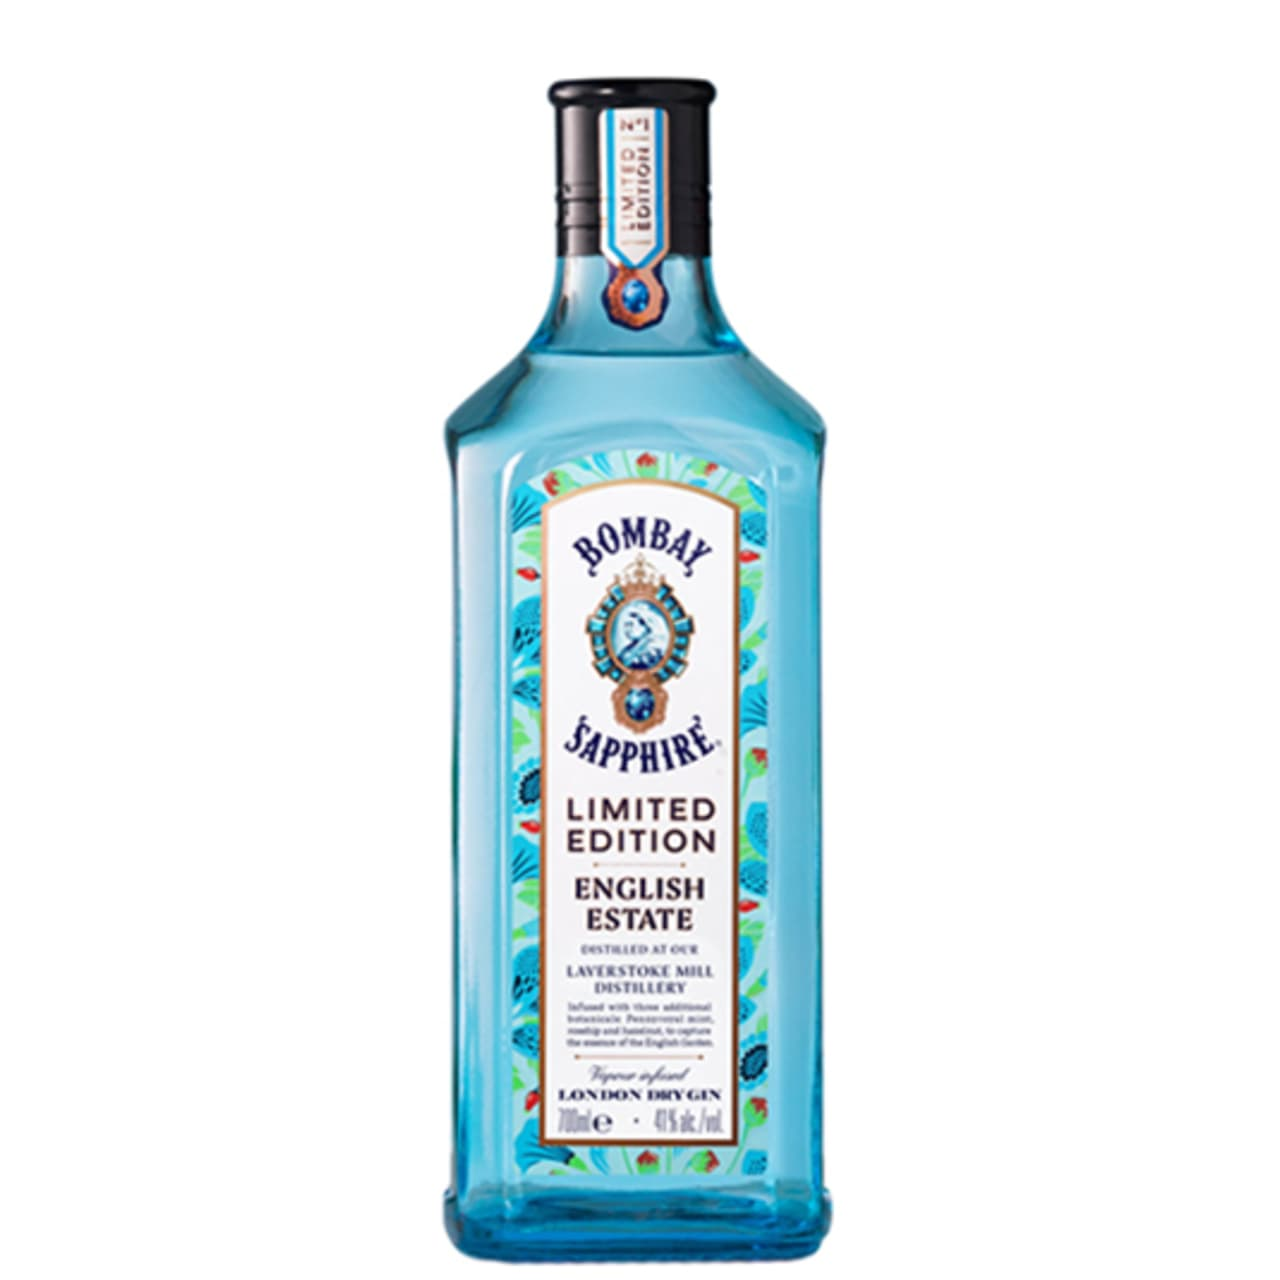 Product Image - Bombay Sapphire English Estate Gin